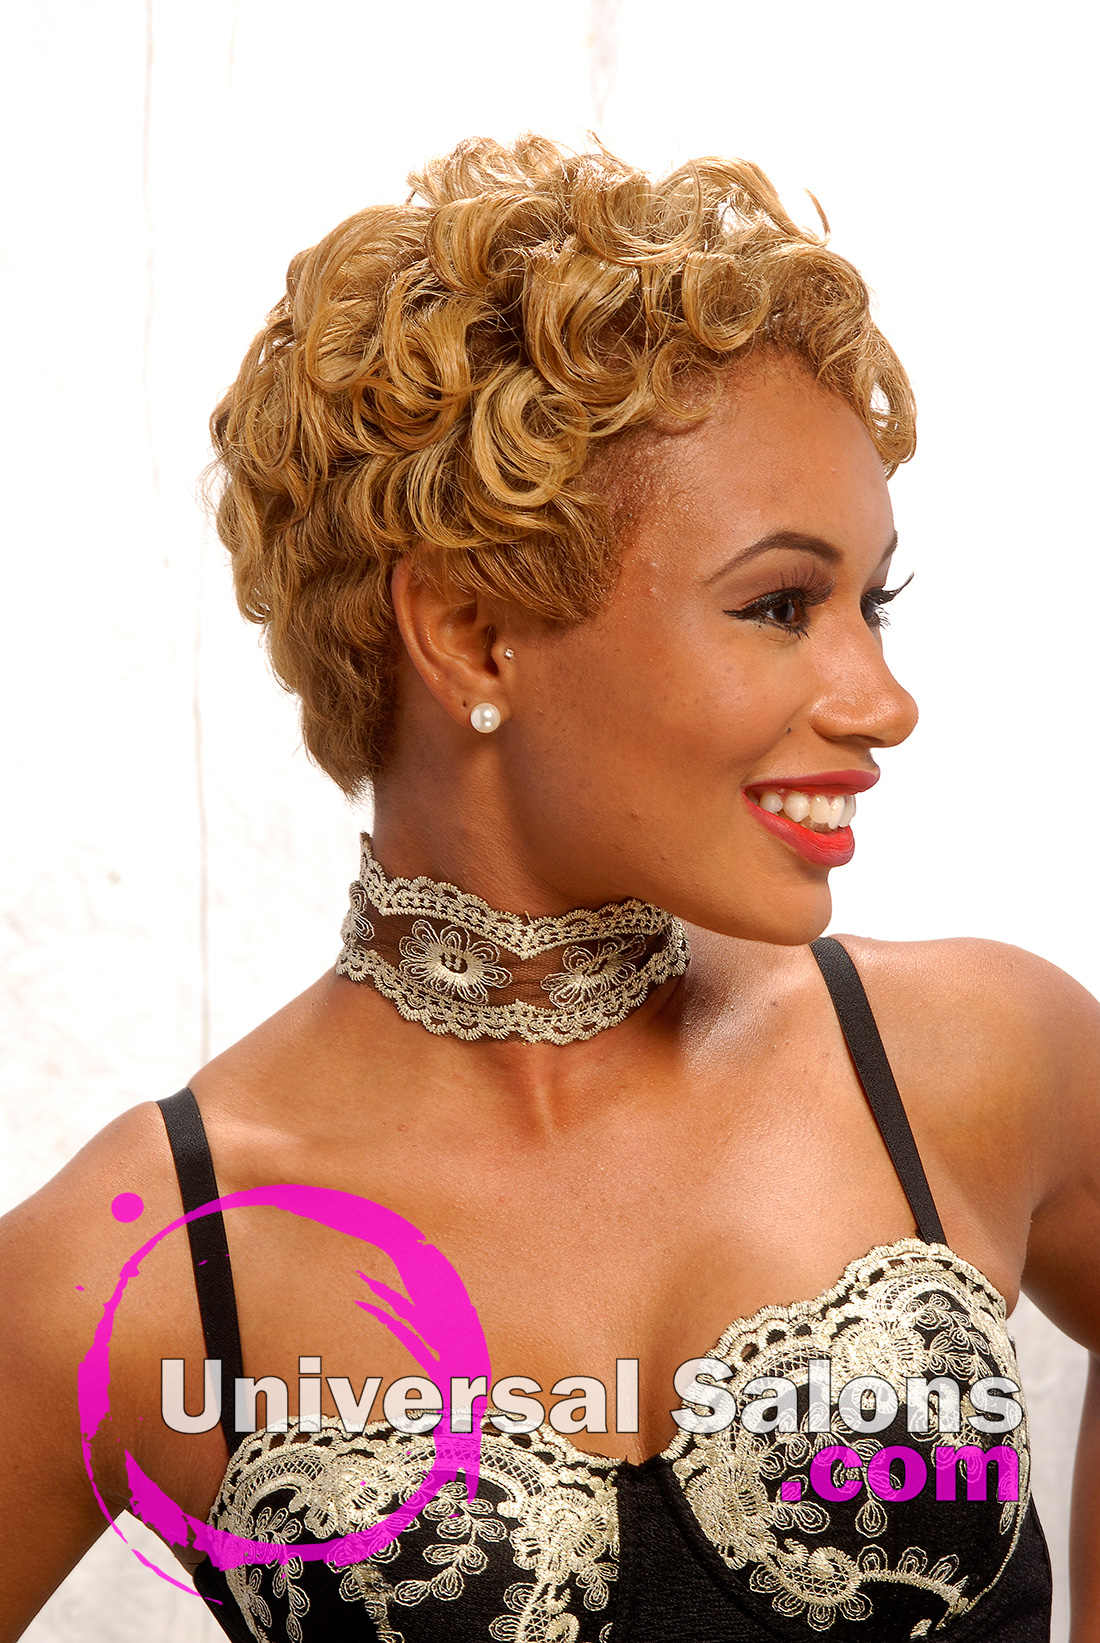 Miraculous Blonde Pin Curl Hairstyle From Deirdre Clay Hairstyles For Women Draintrainus